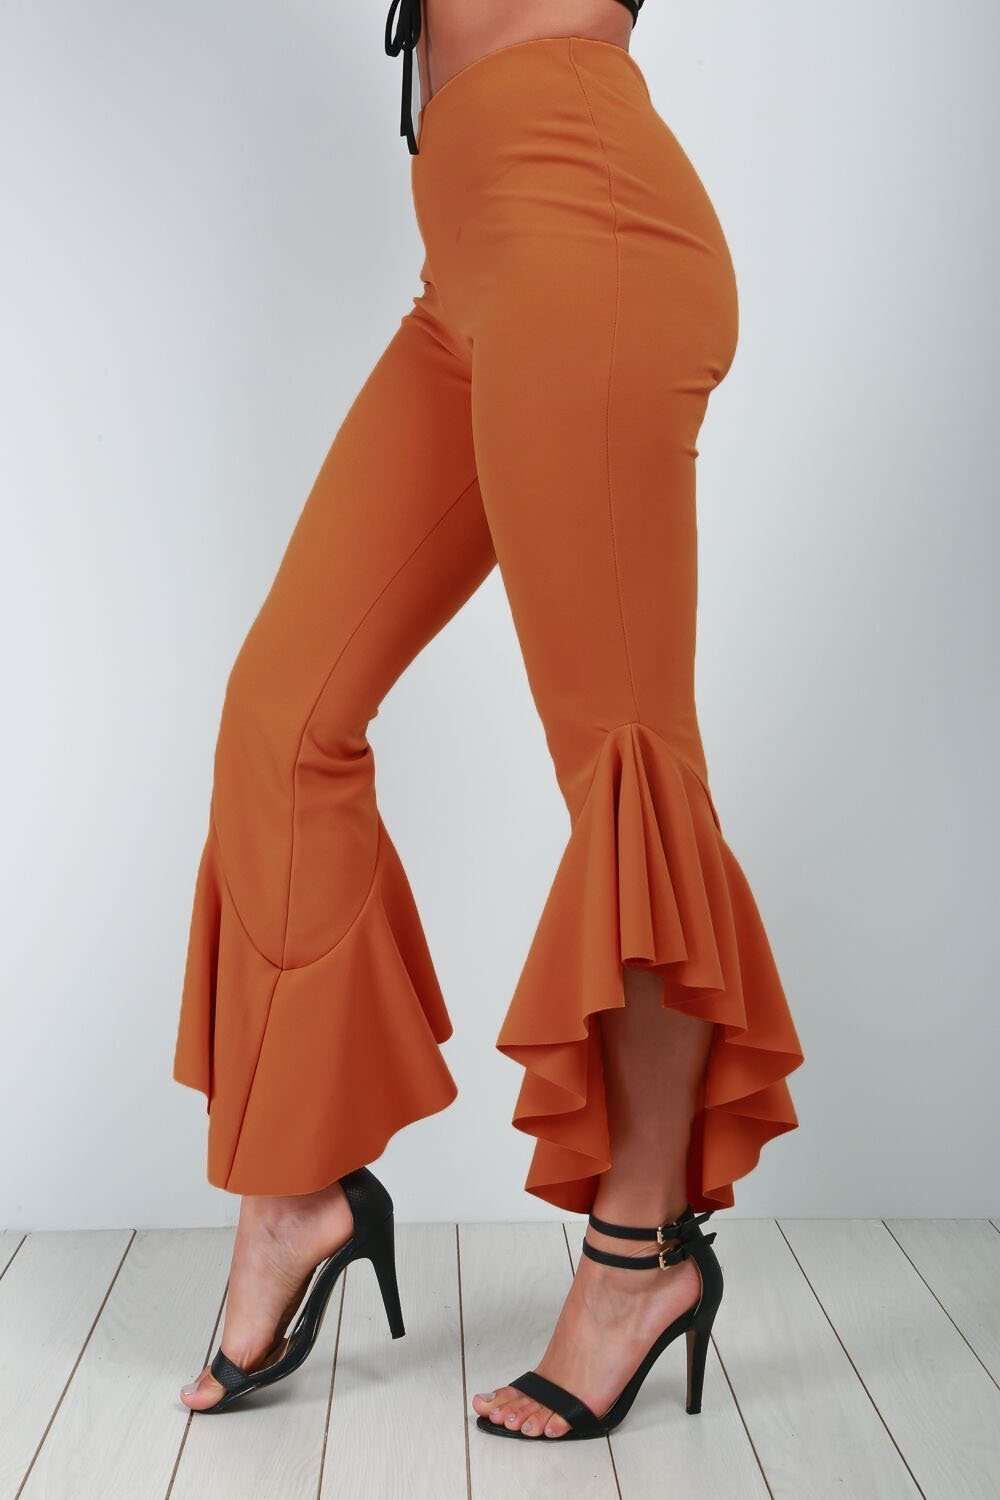 Mustard High Waist Frilly Slim Leg Trousers - bejealous-com